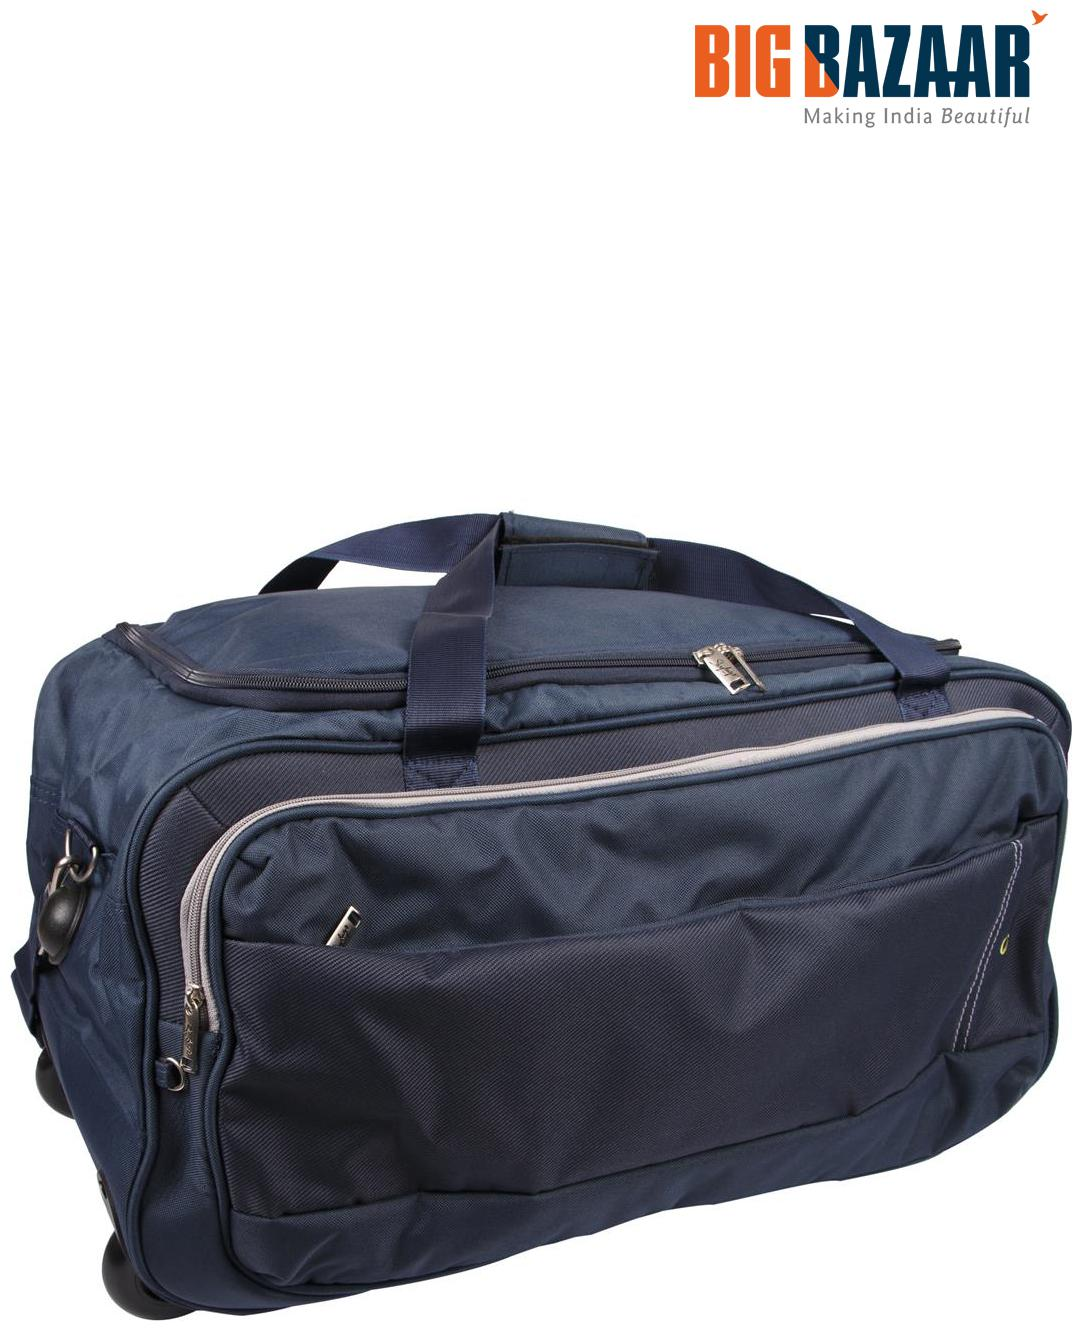 71a8345c4ce6 Duffle Bags & Gym Bags for Men - Buy Travel Bags Online at Paytm Mall